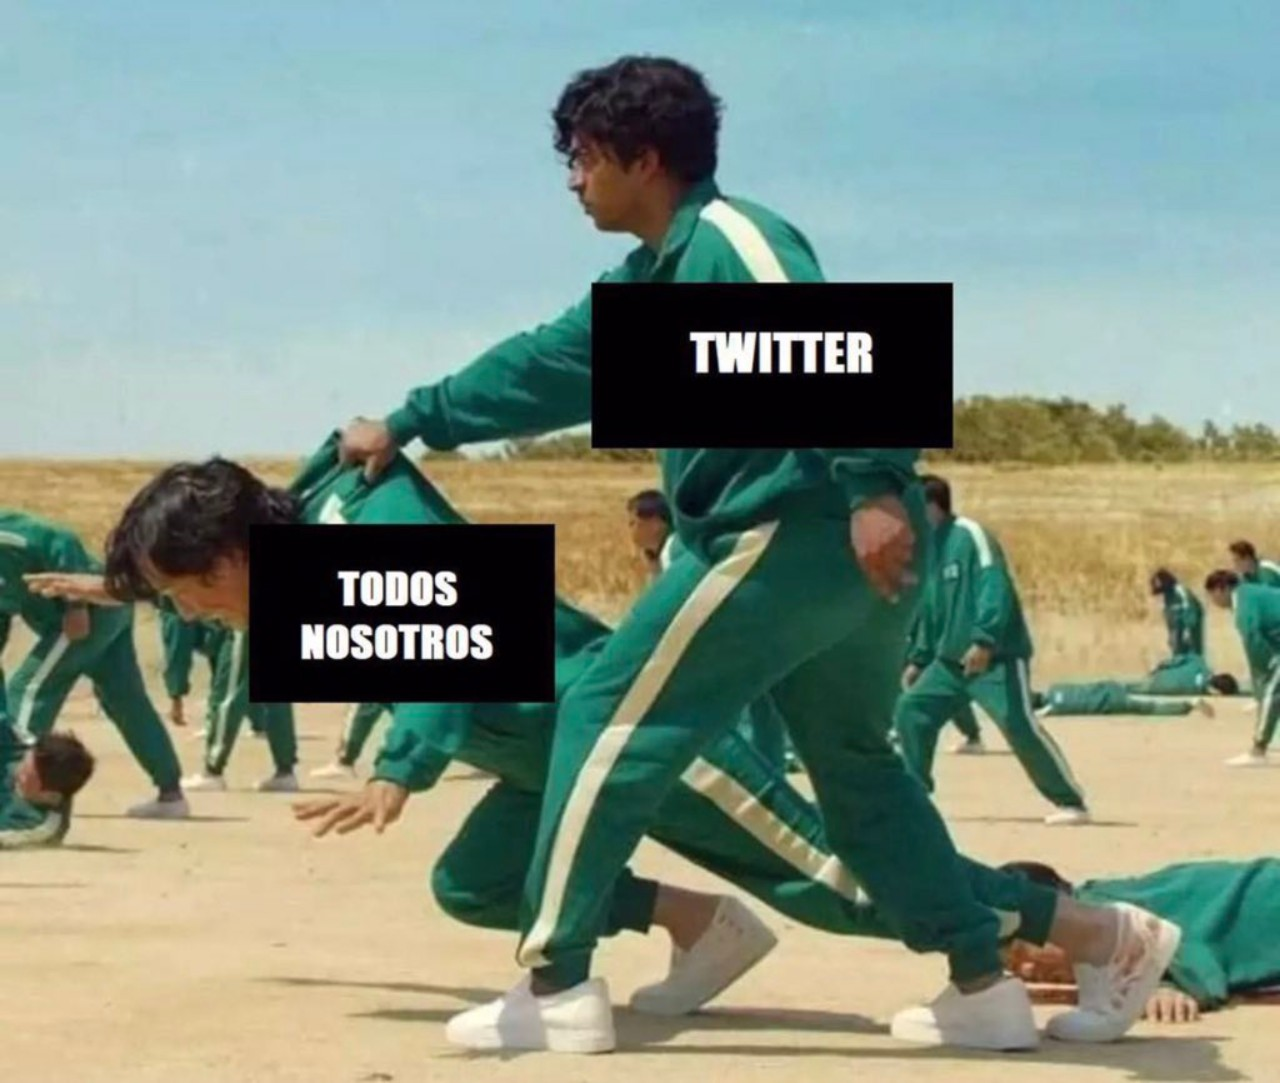 caida redes sociales twitter refugio